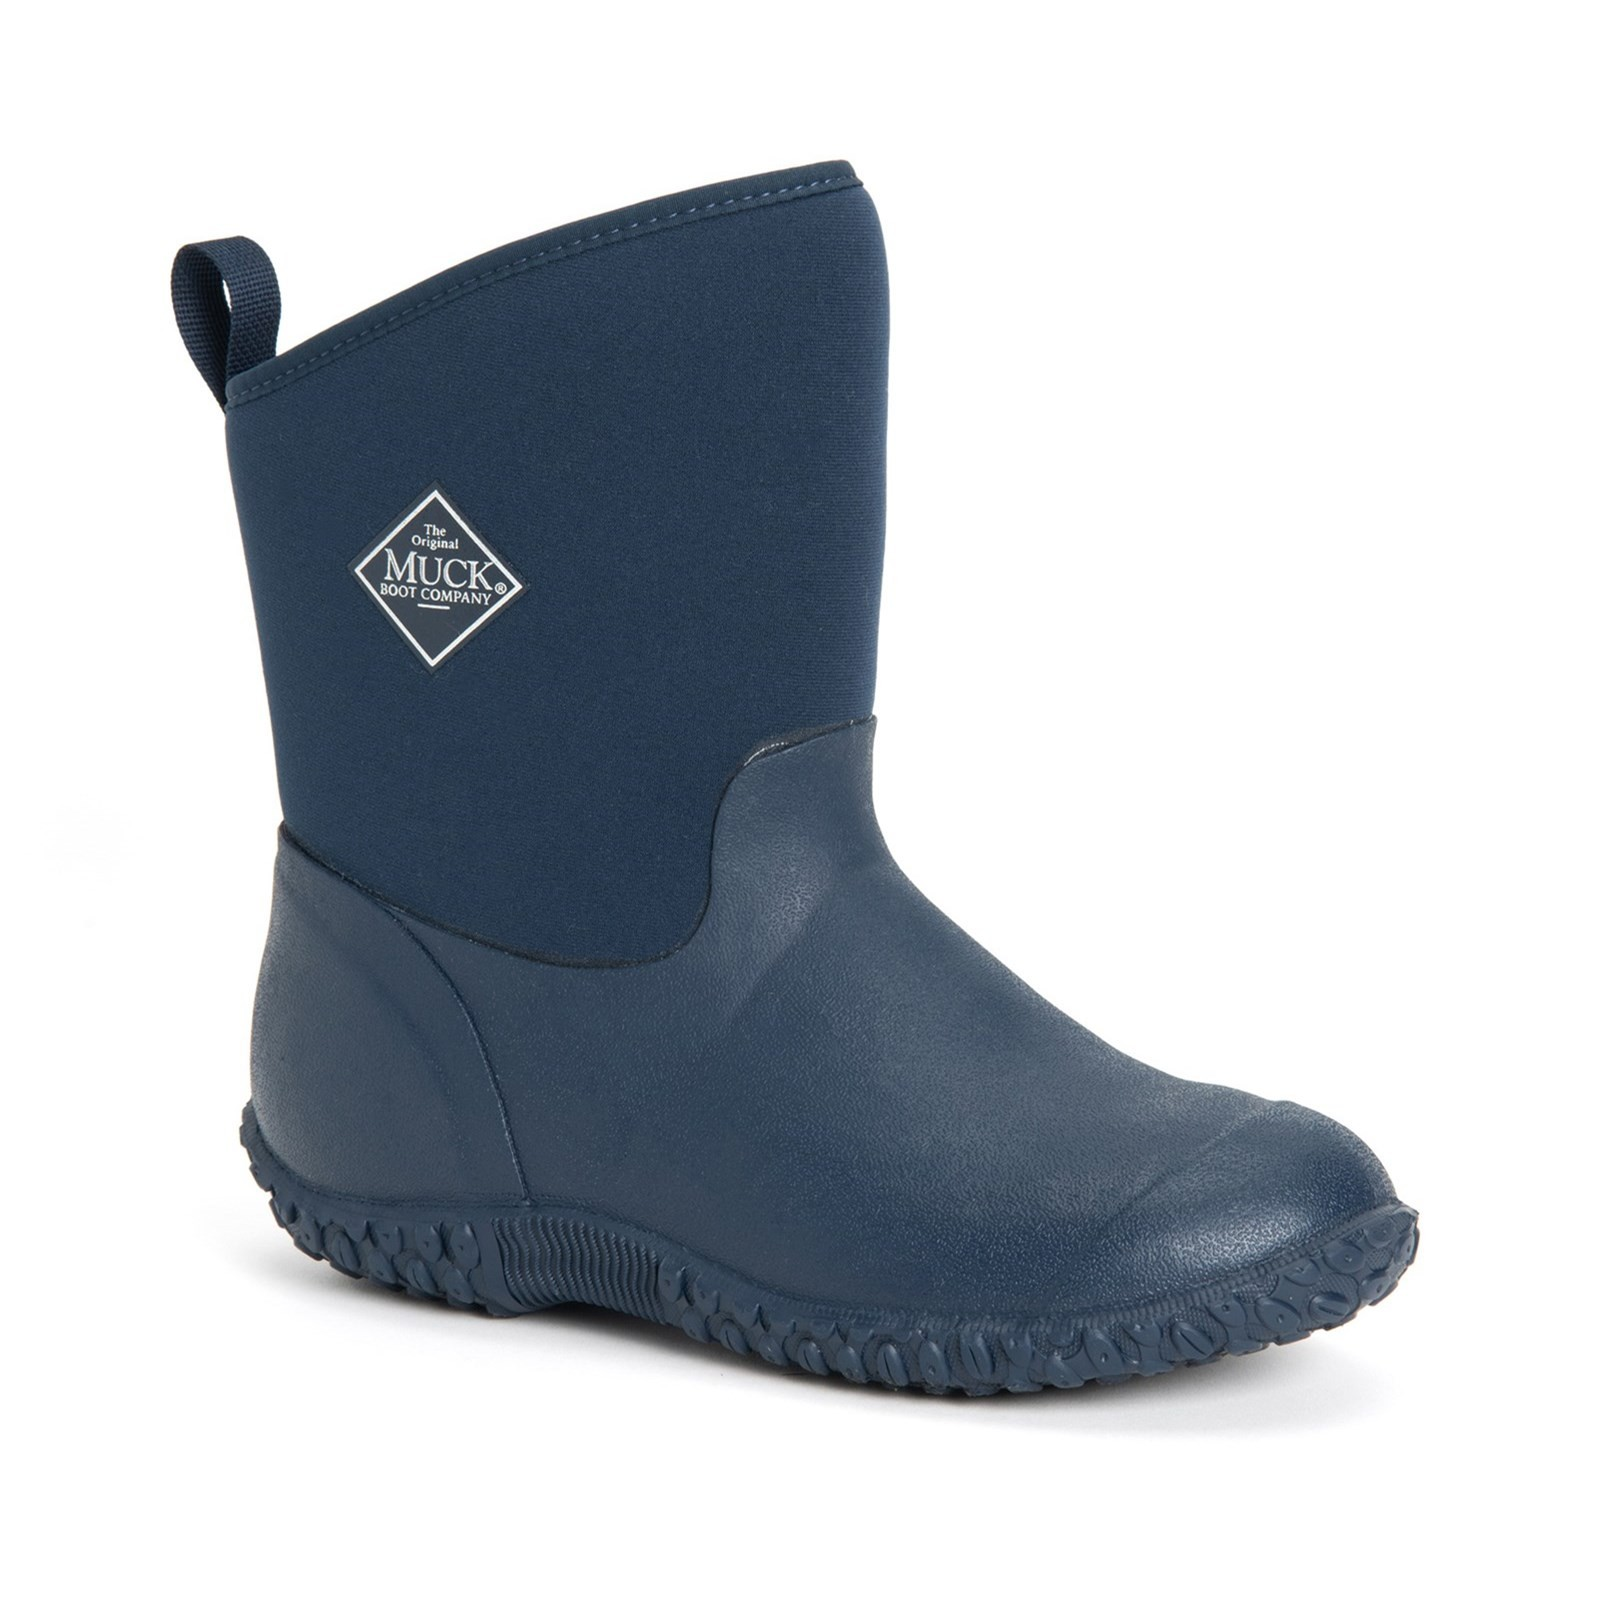 Muck Boot Muckster II Mid Shearling Size 8 UK